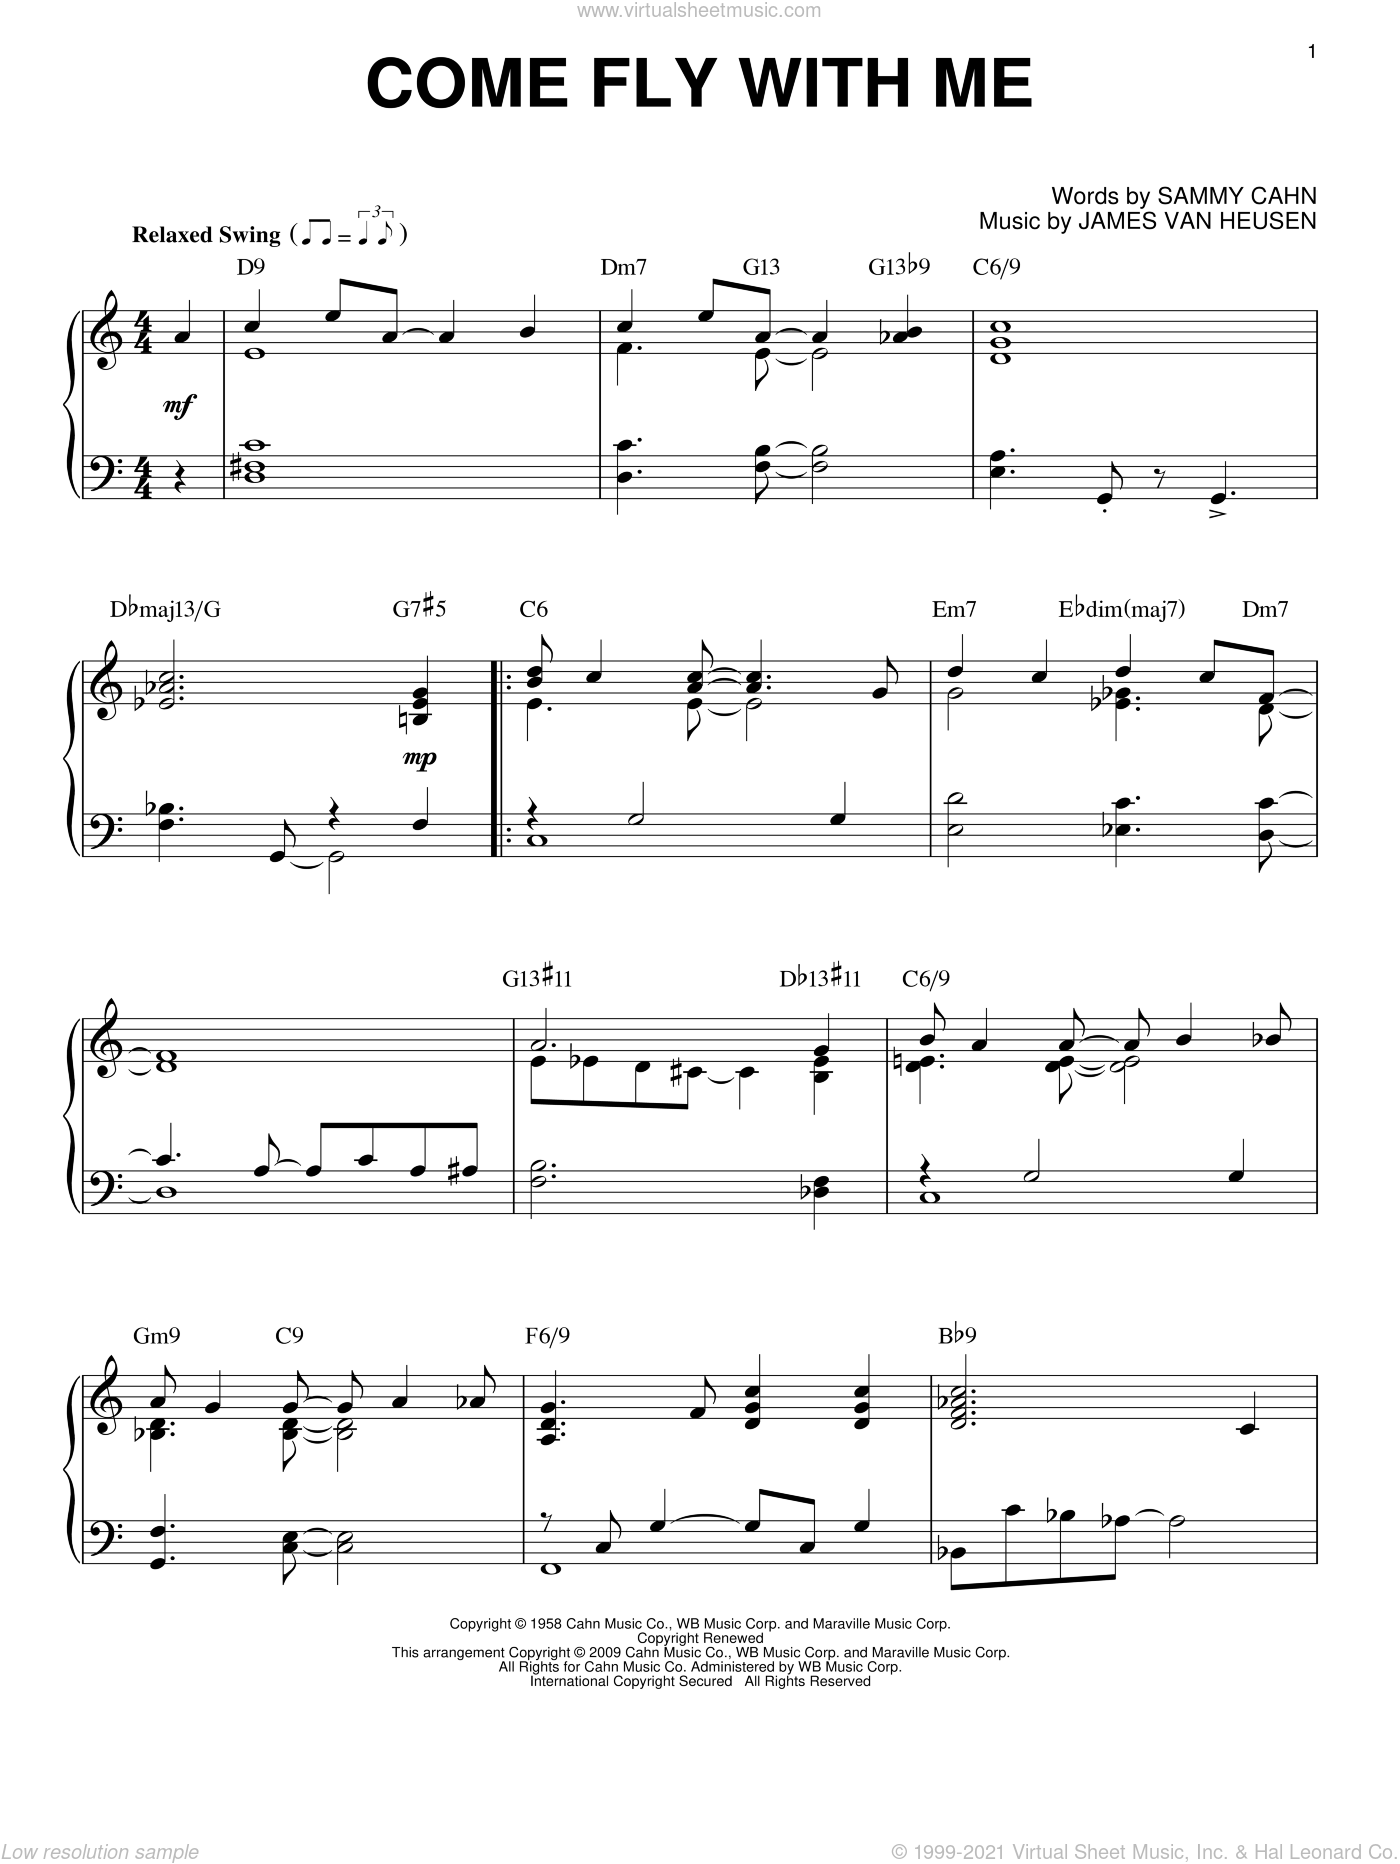 Come Fly With Me (arr. Brent Edstrom) sheet music for piano solo by Frank Sinatra, Jimmy van Heusen and Sammy Cahn, intermediate skill level